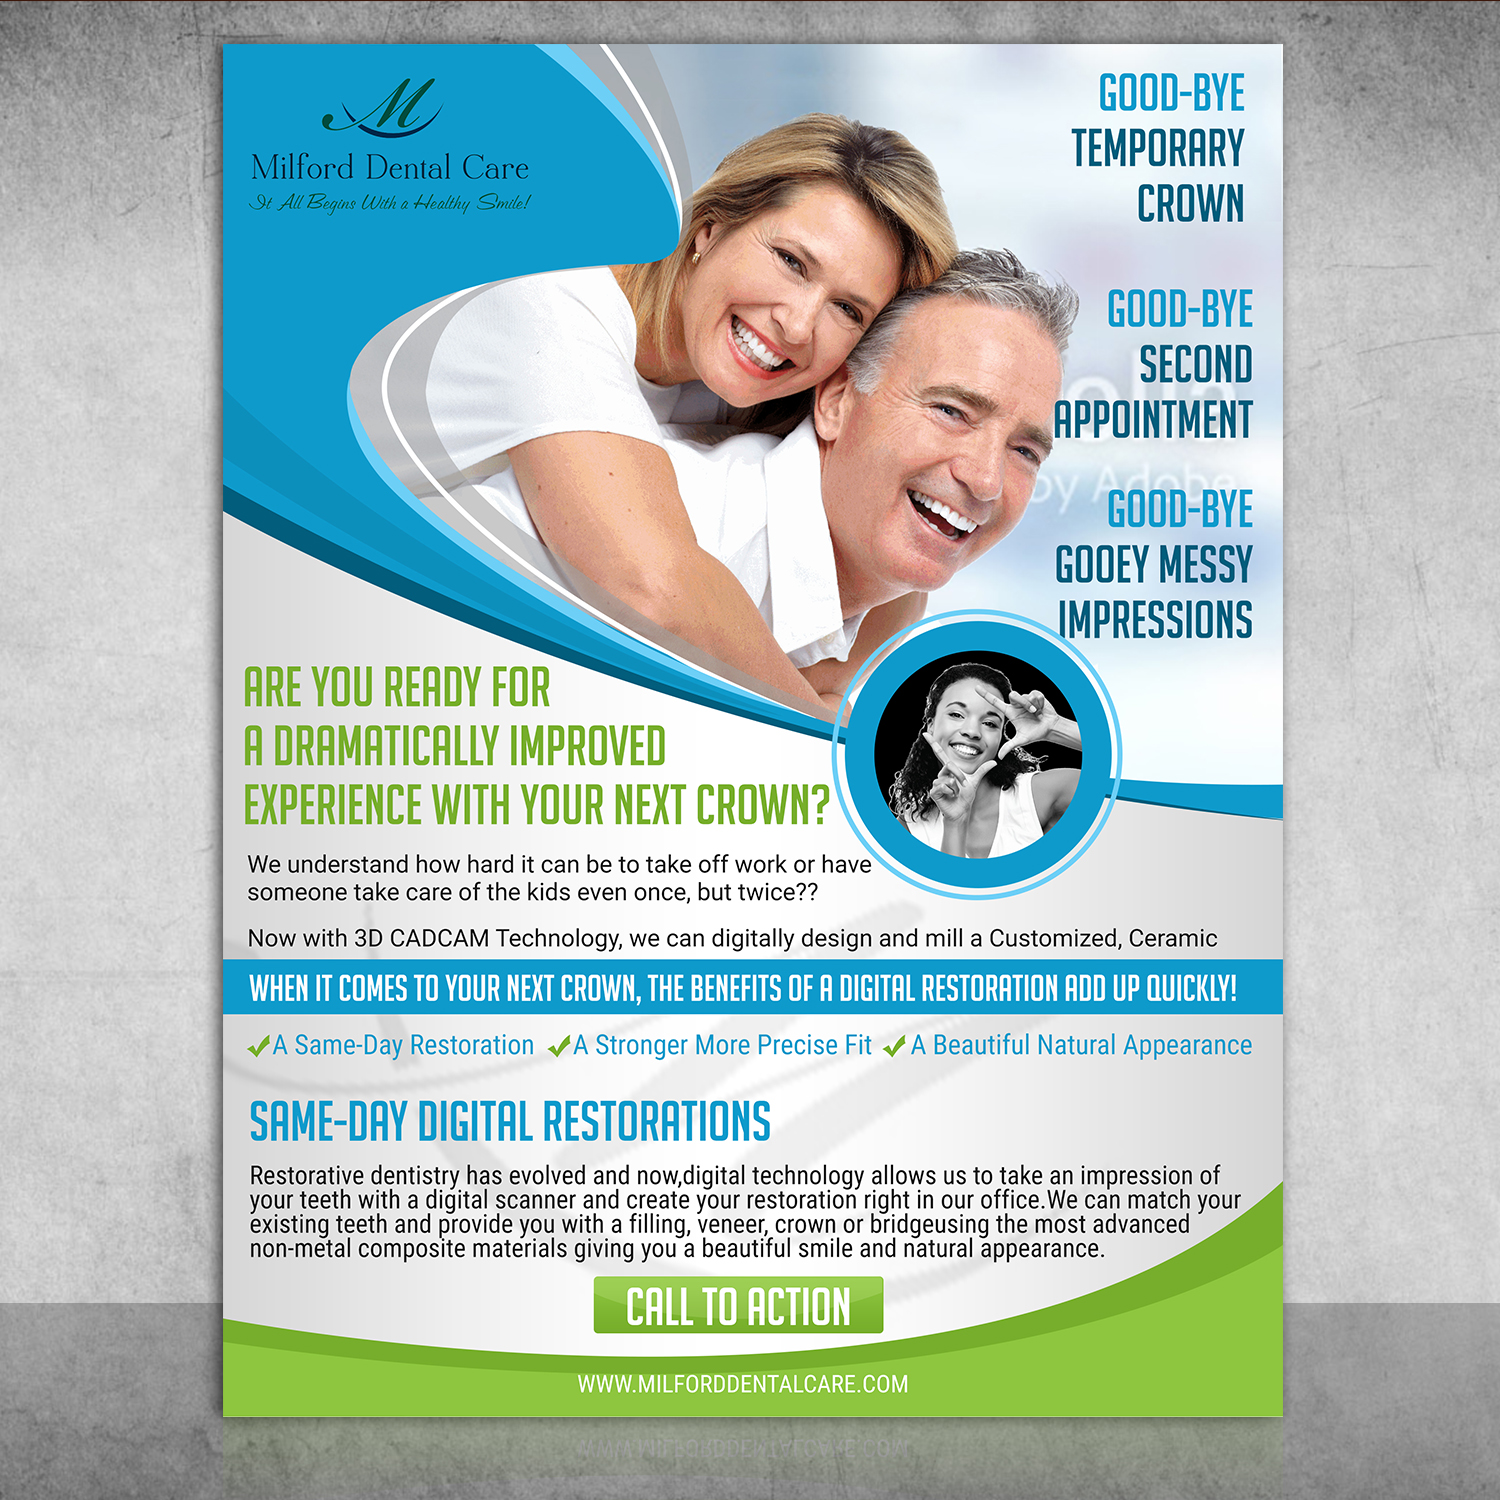 dental flyer design - Monza berglauf-verband com